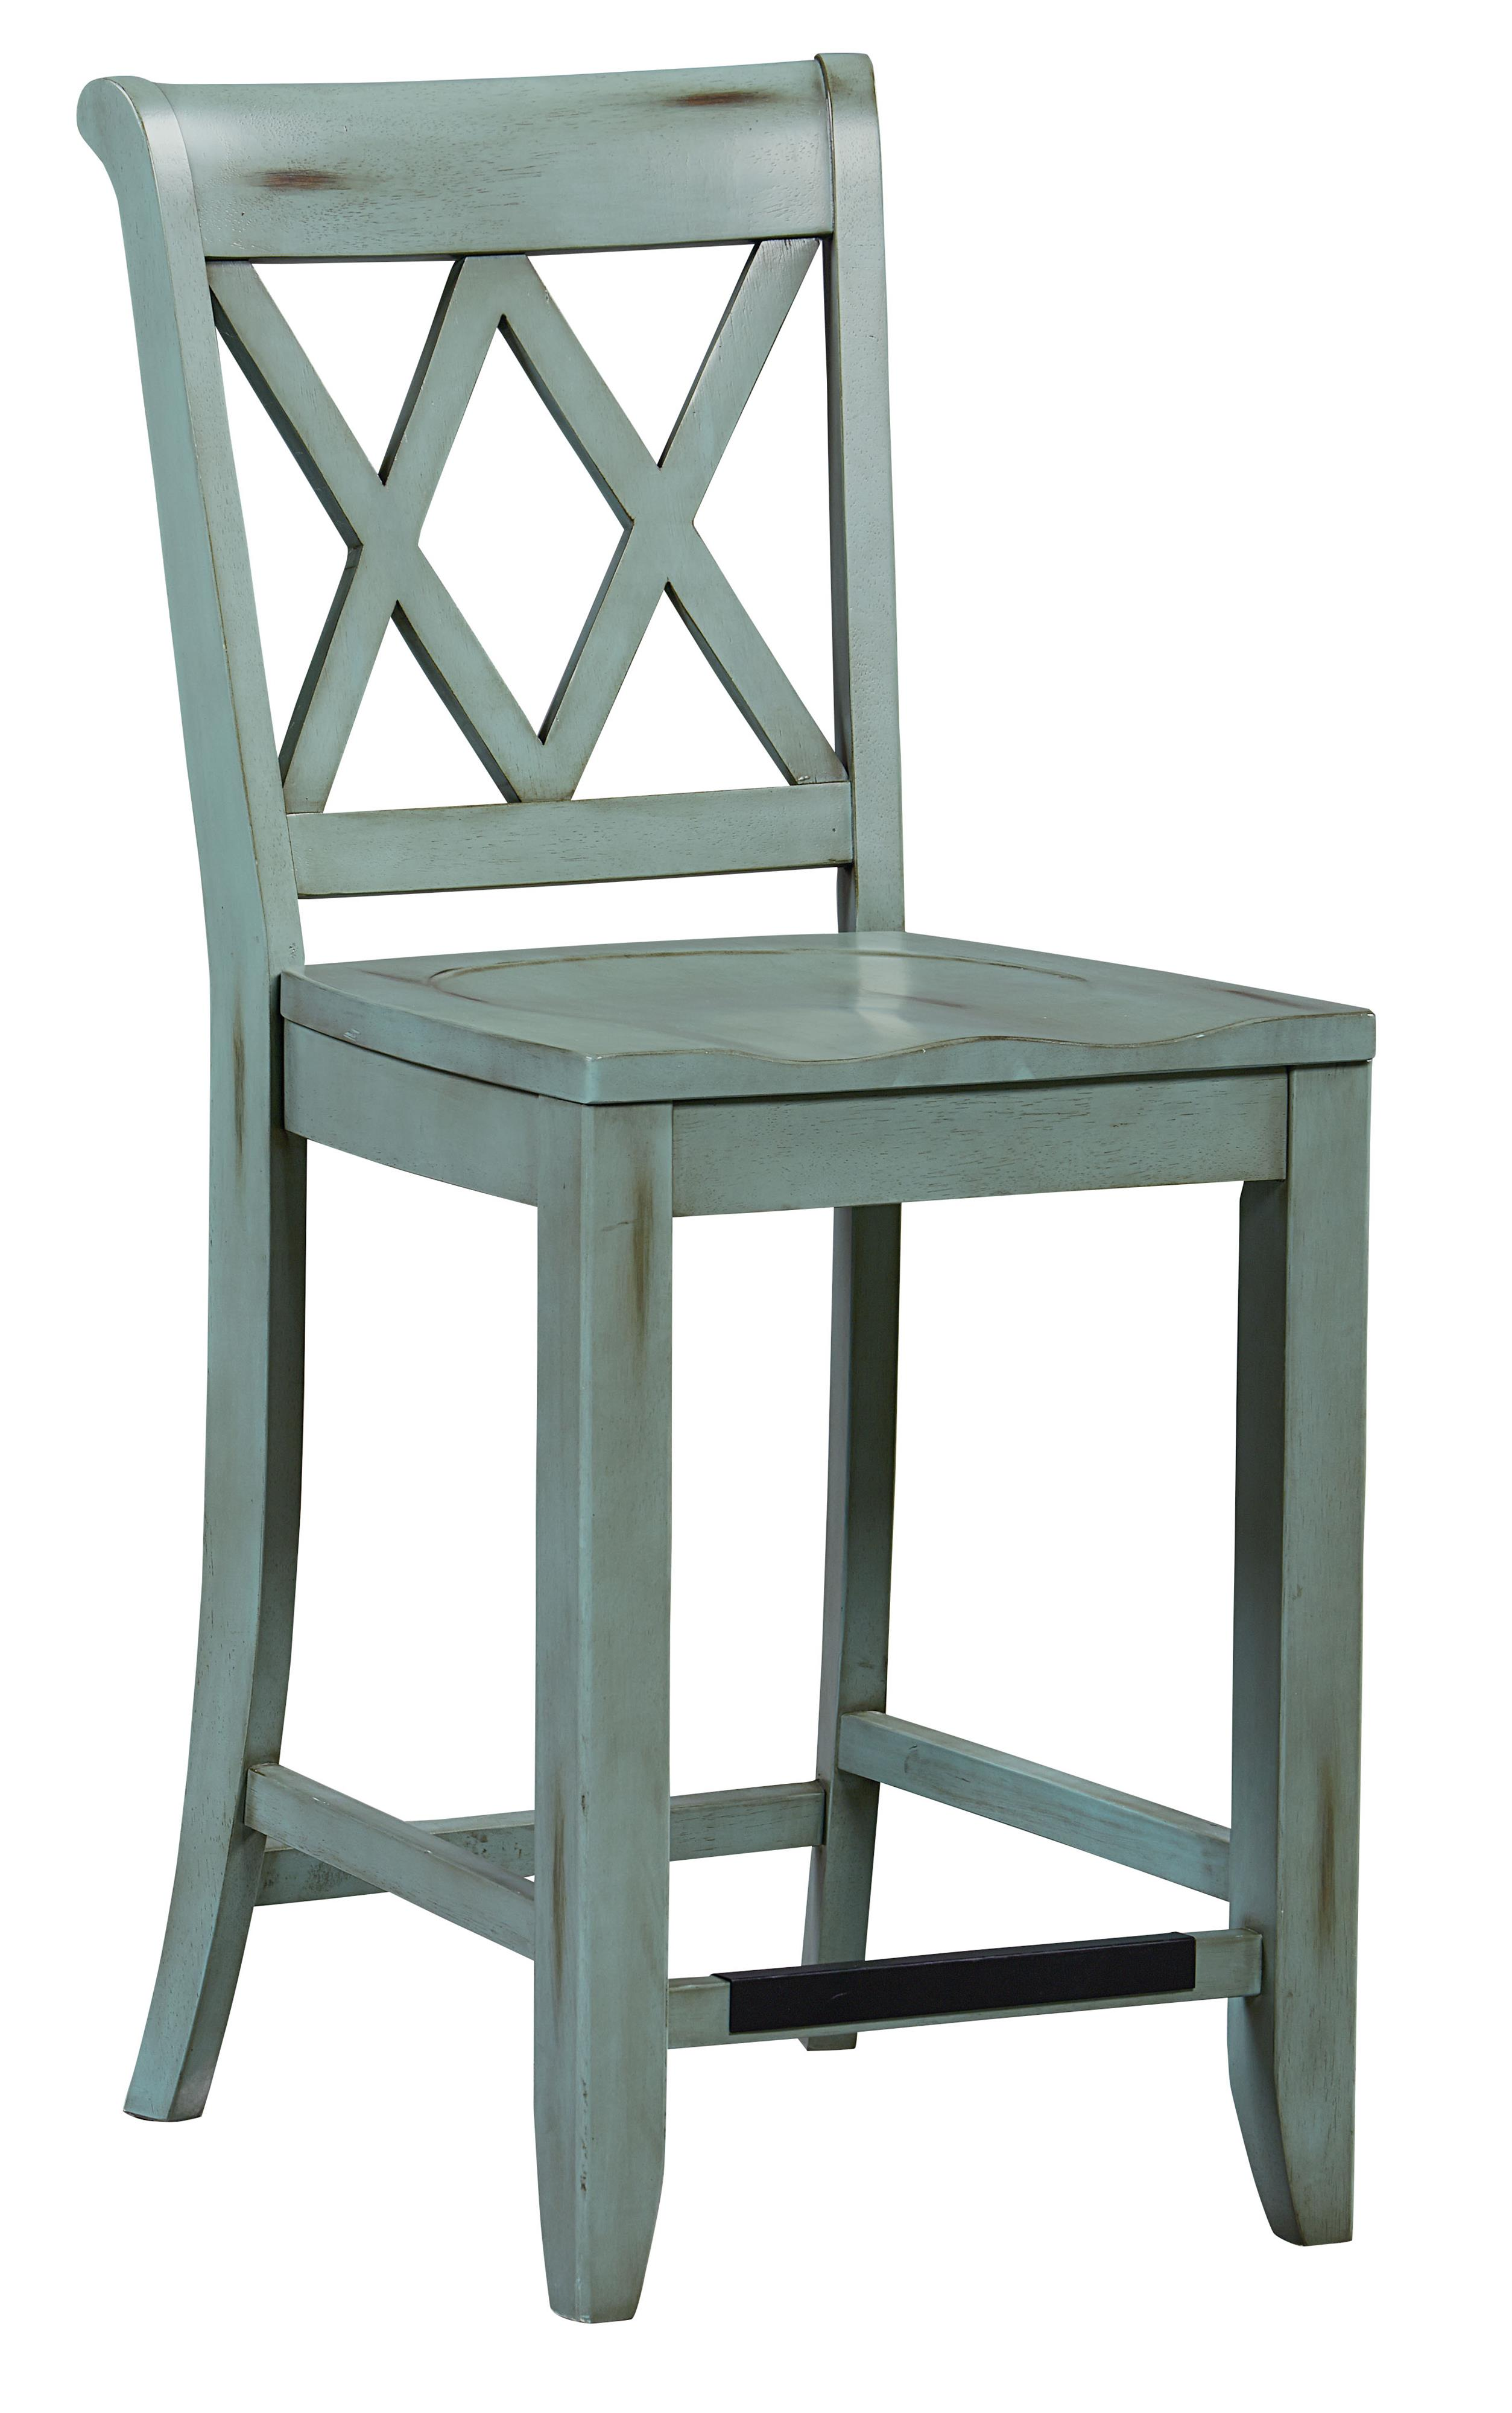 chair stool counter height folding wood boat deck chairs standard furniture vintage vanilla